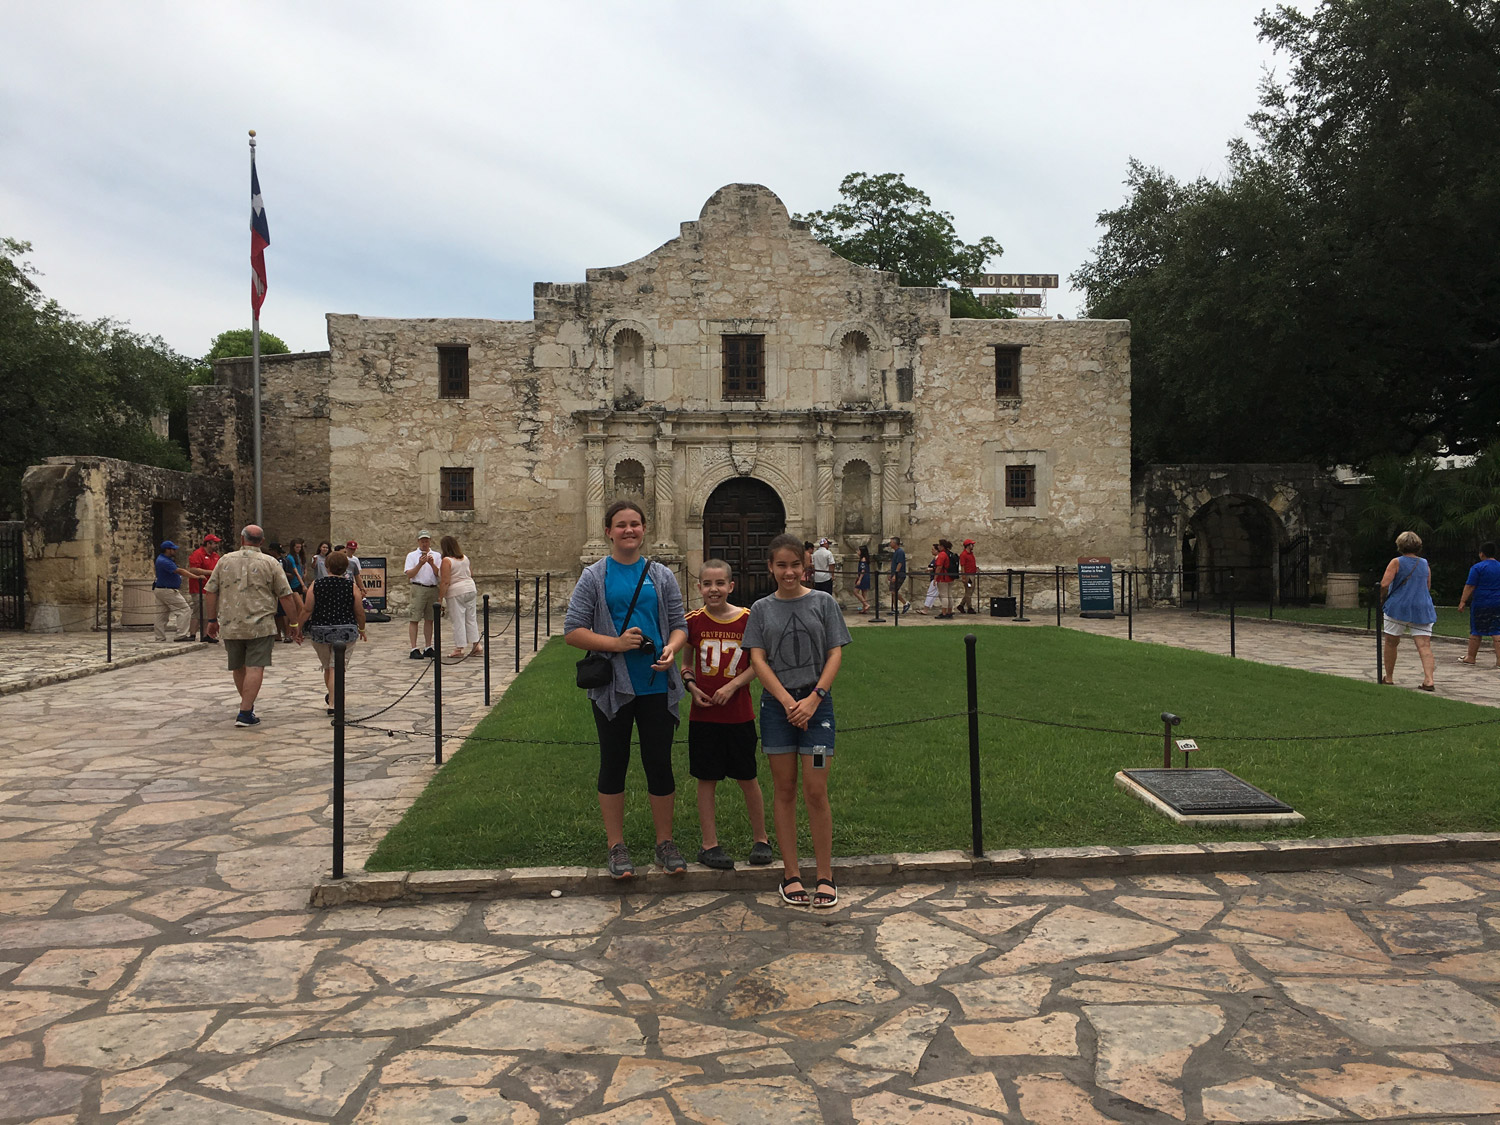 """Remember the Alamo"" - The battle cry of the Texans, led by Sam Houston."